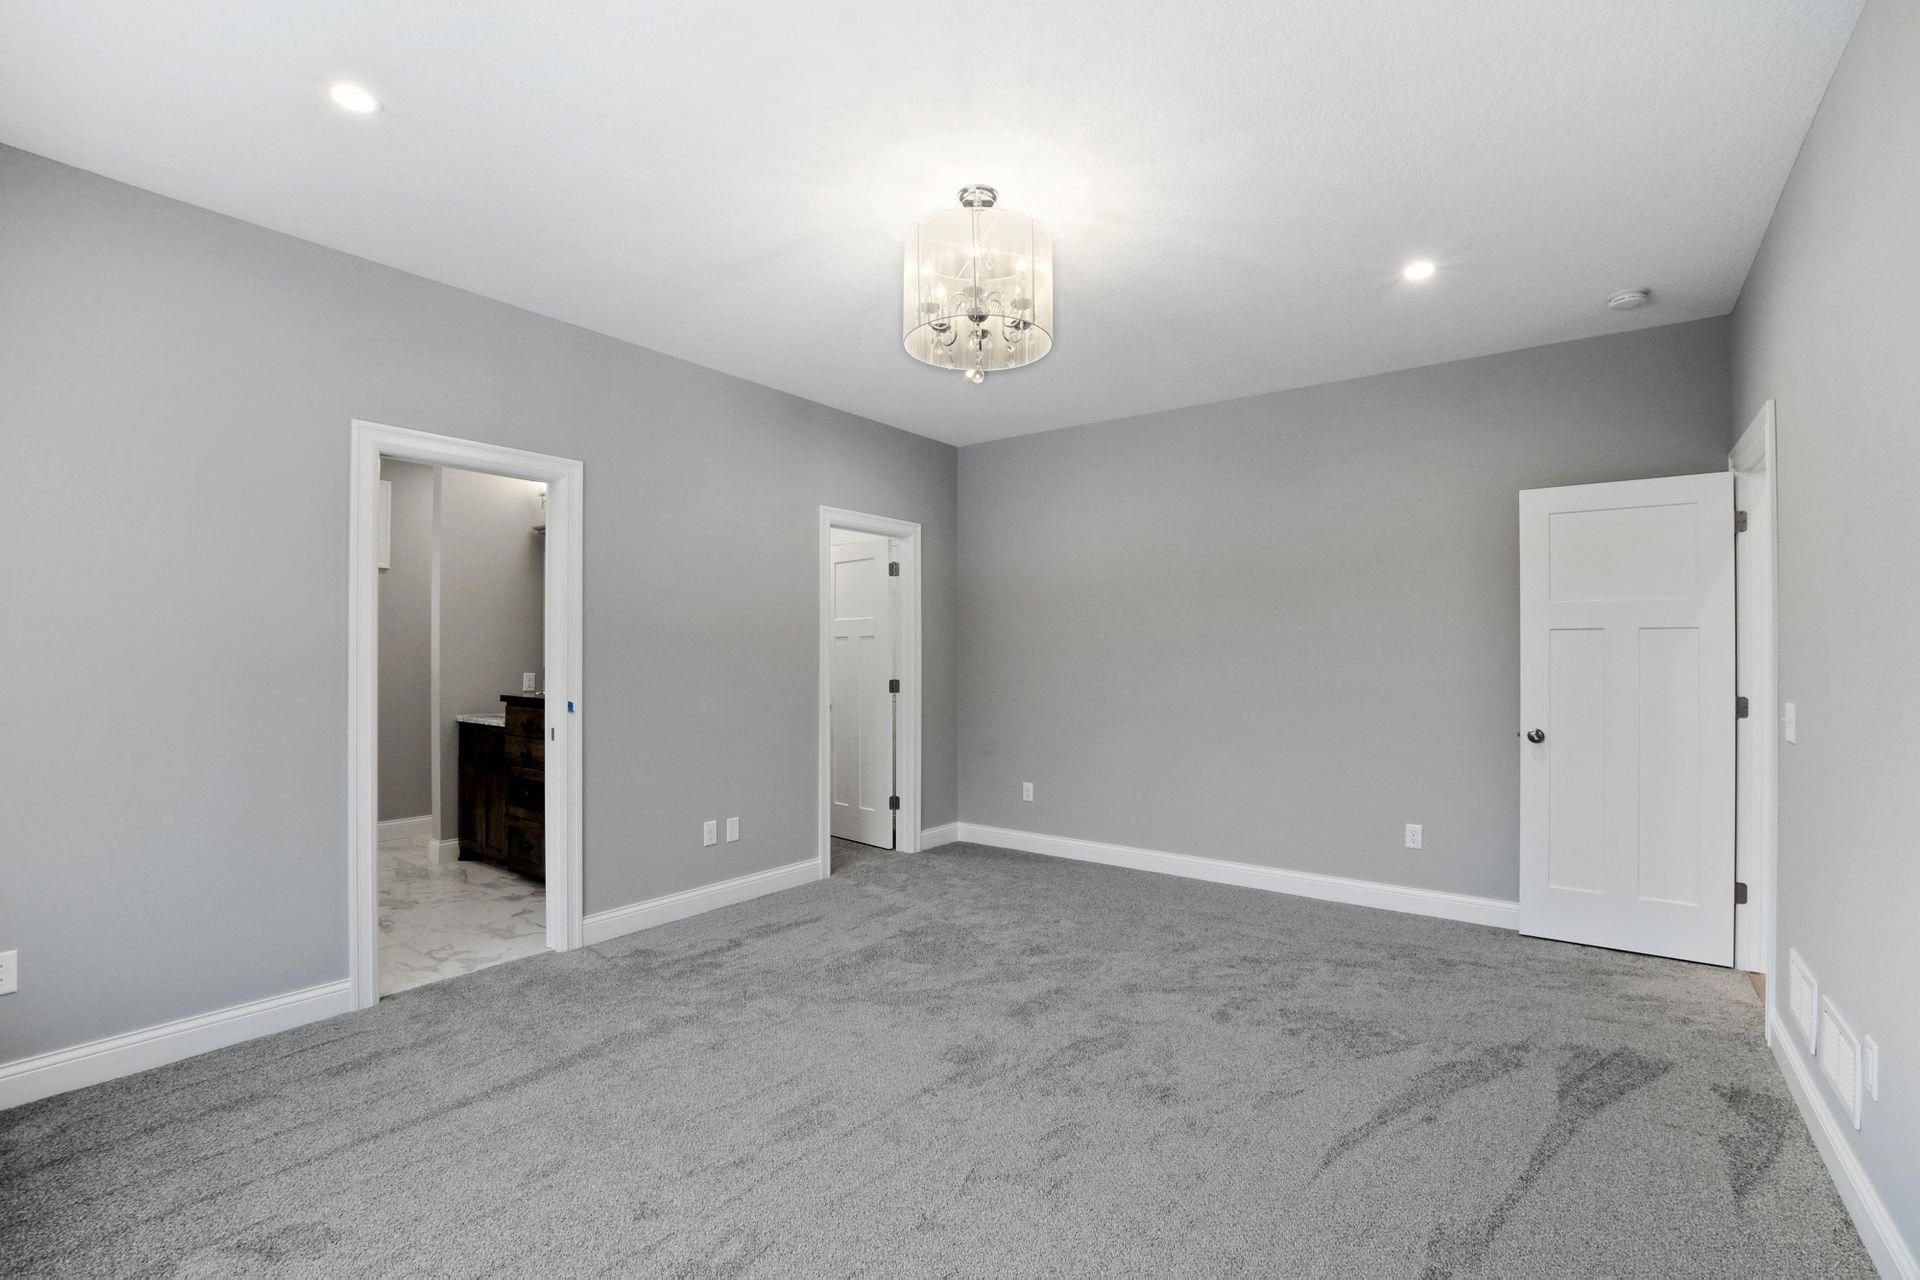 Interior Design Bedroom Grey Carpet